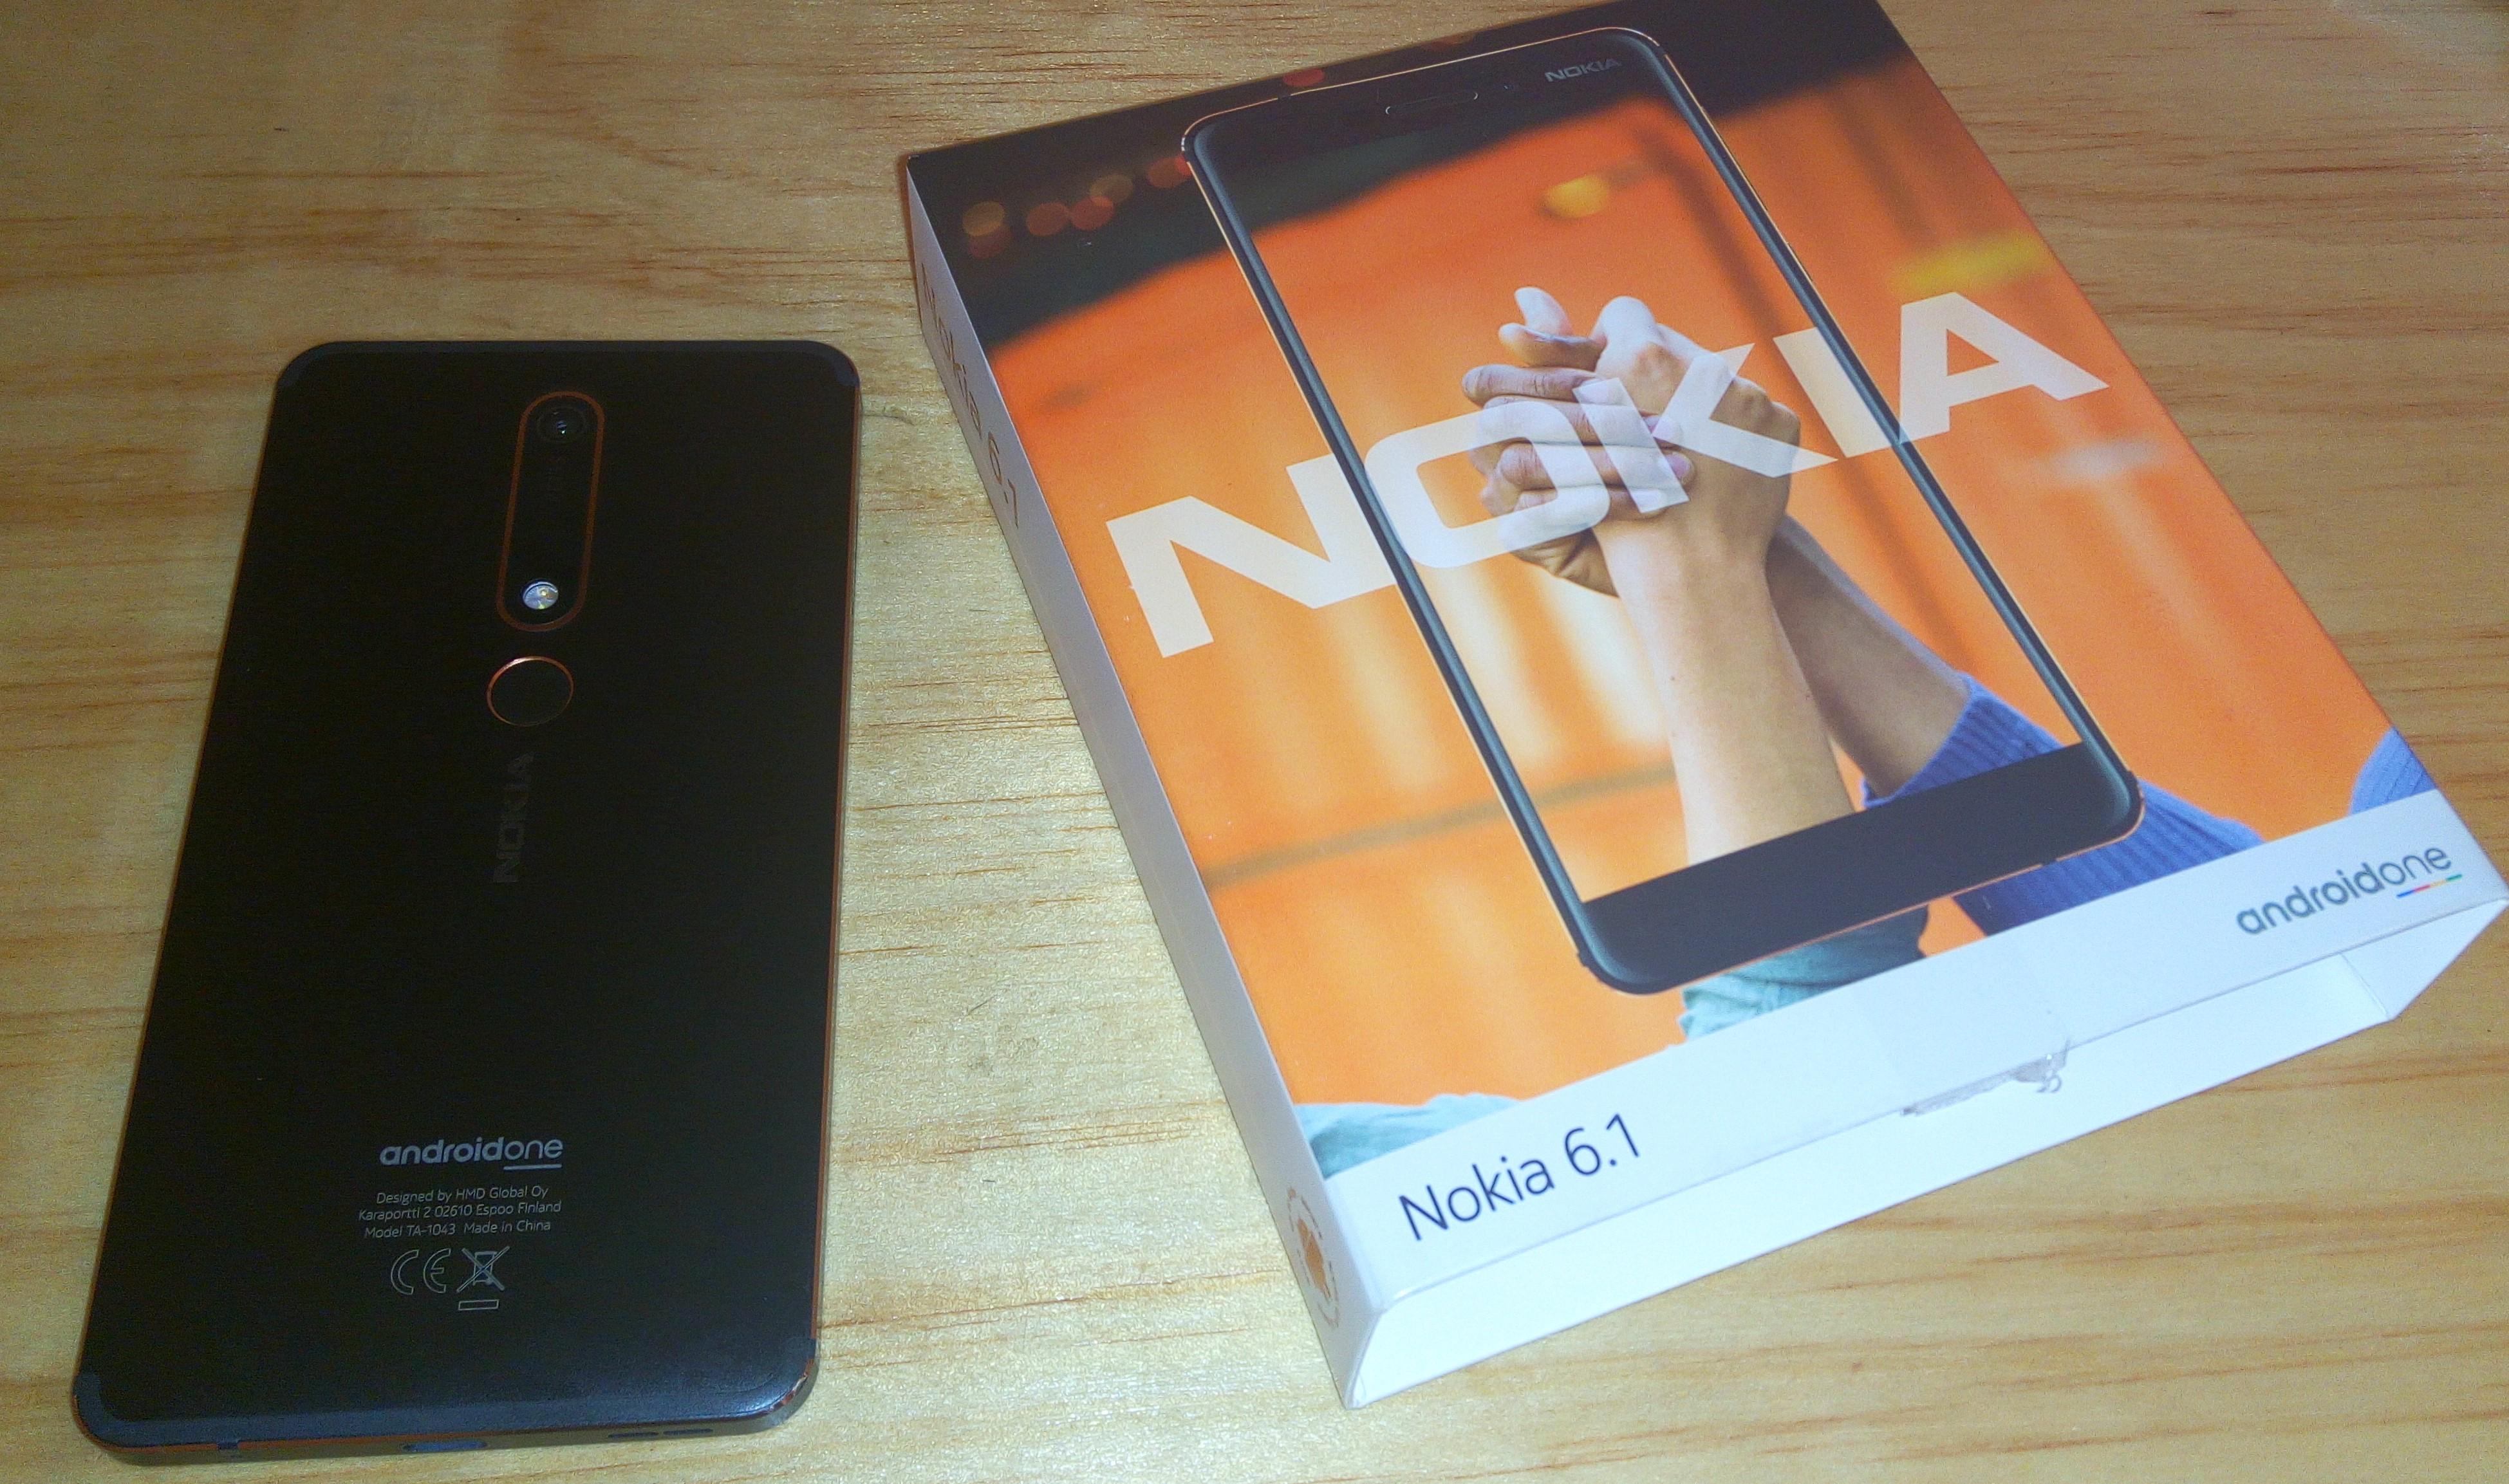 Nokia 6 Arte Black Video Unboxing And Reviewing The Nokia 6 1 Mwende Ngao